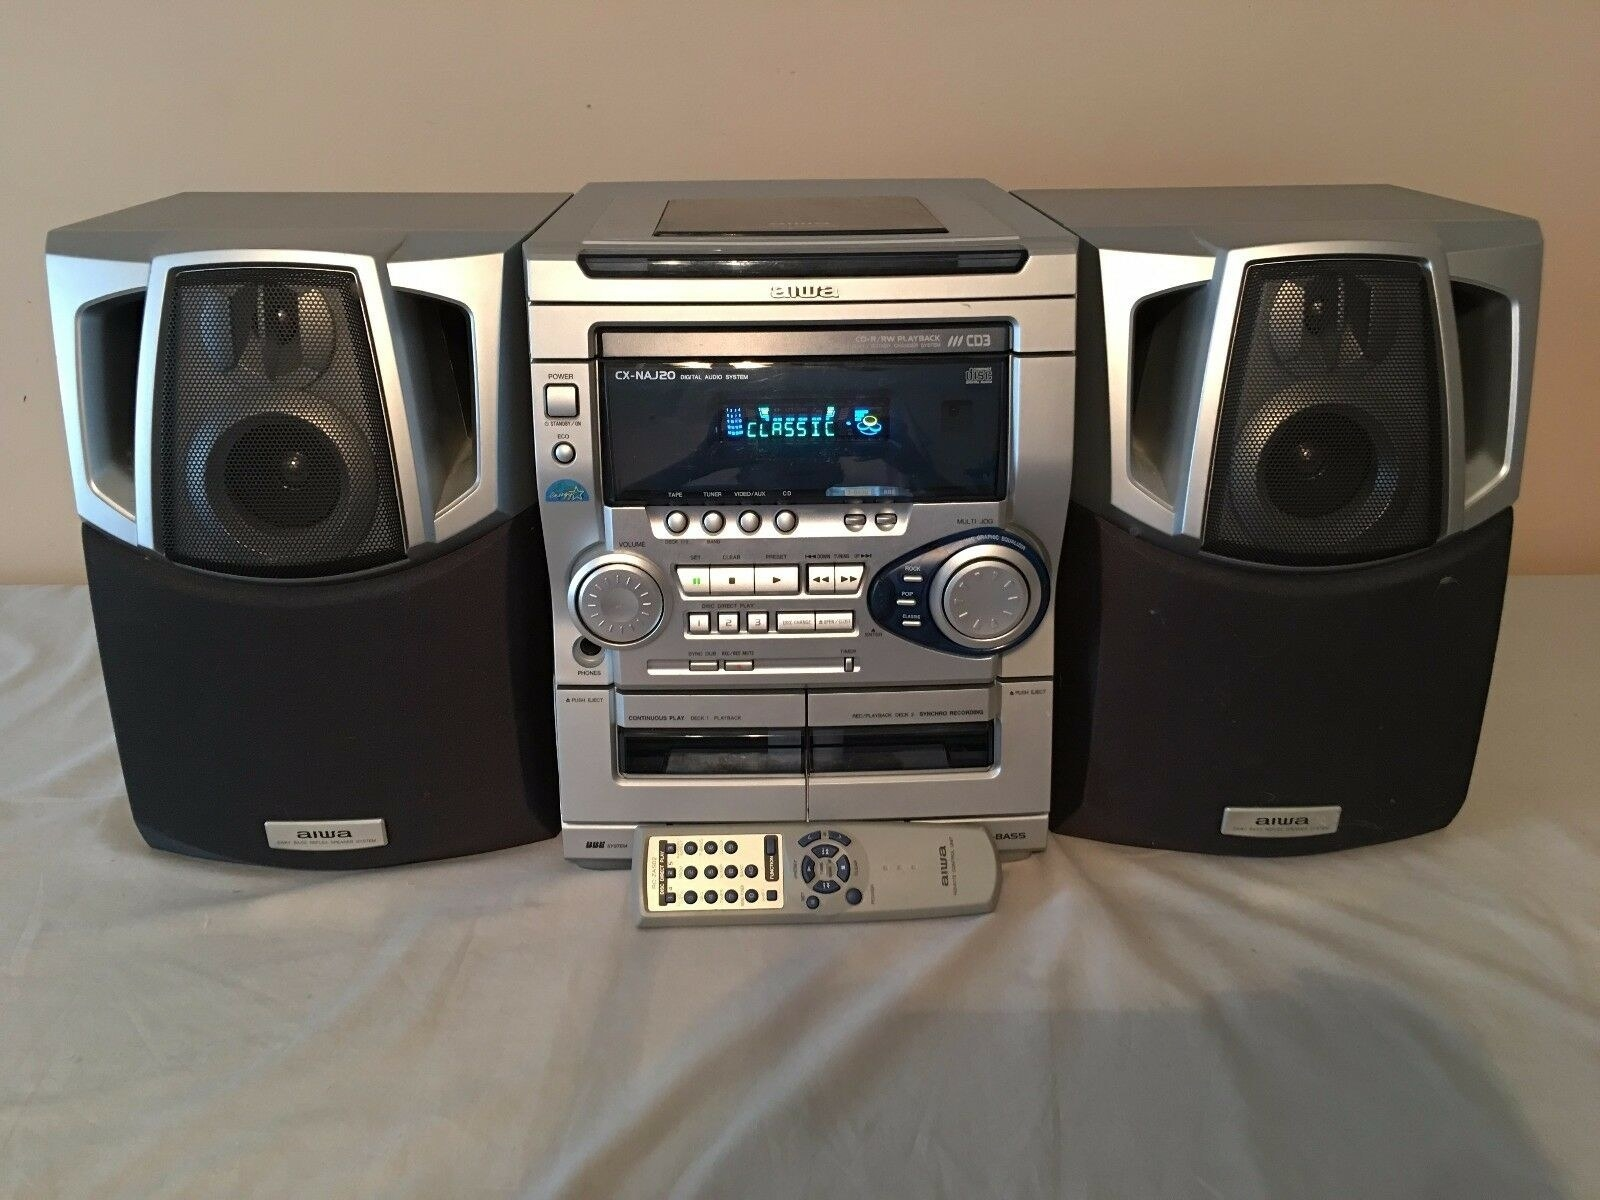 A silver 3-CD player boombox from the late '90s